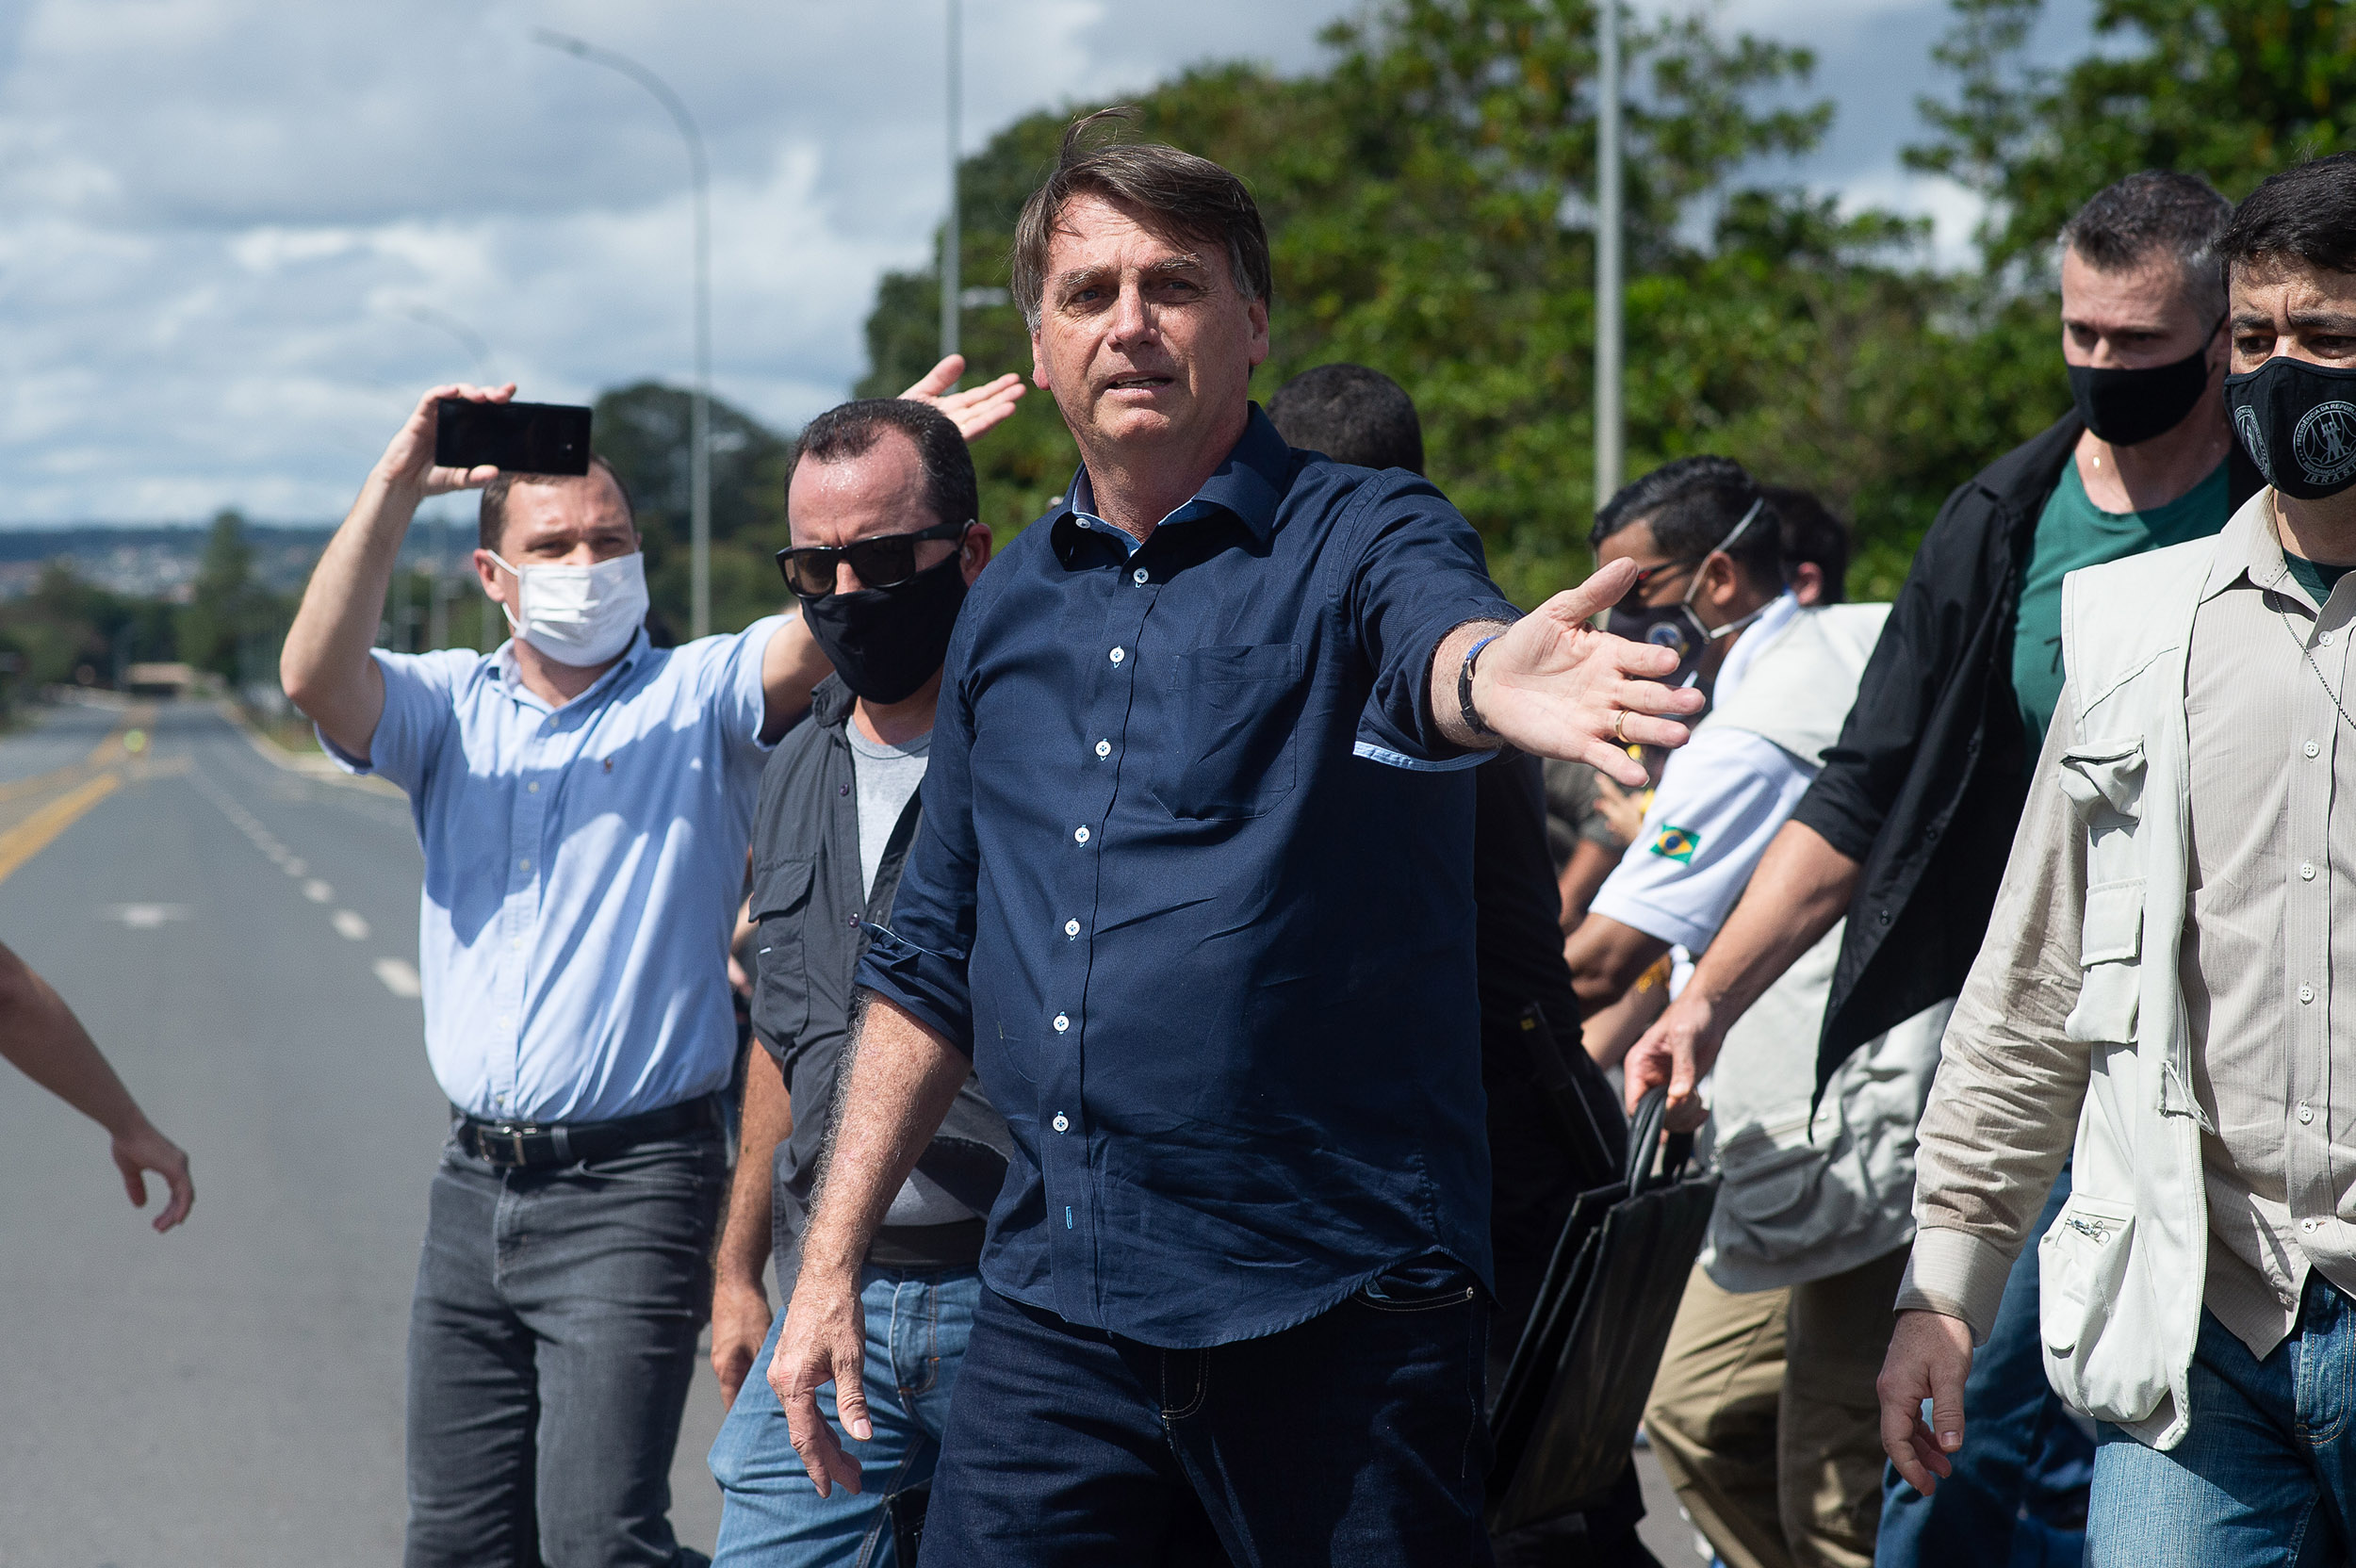 Brazilian President Jair Bolsonaro reacts during a demonstration in favor of his government amidst the coronavirus pandemic in front of the Planalto Palace in Brasilia, Brazil, on Sunday, May 24.